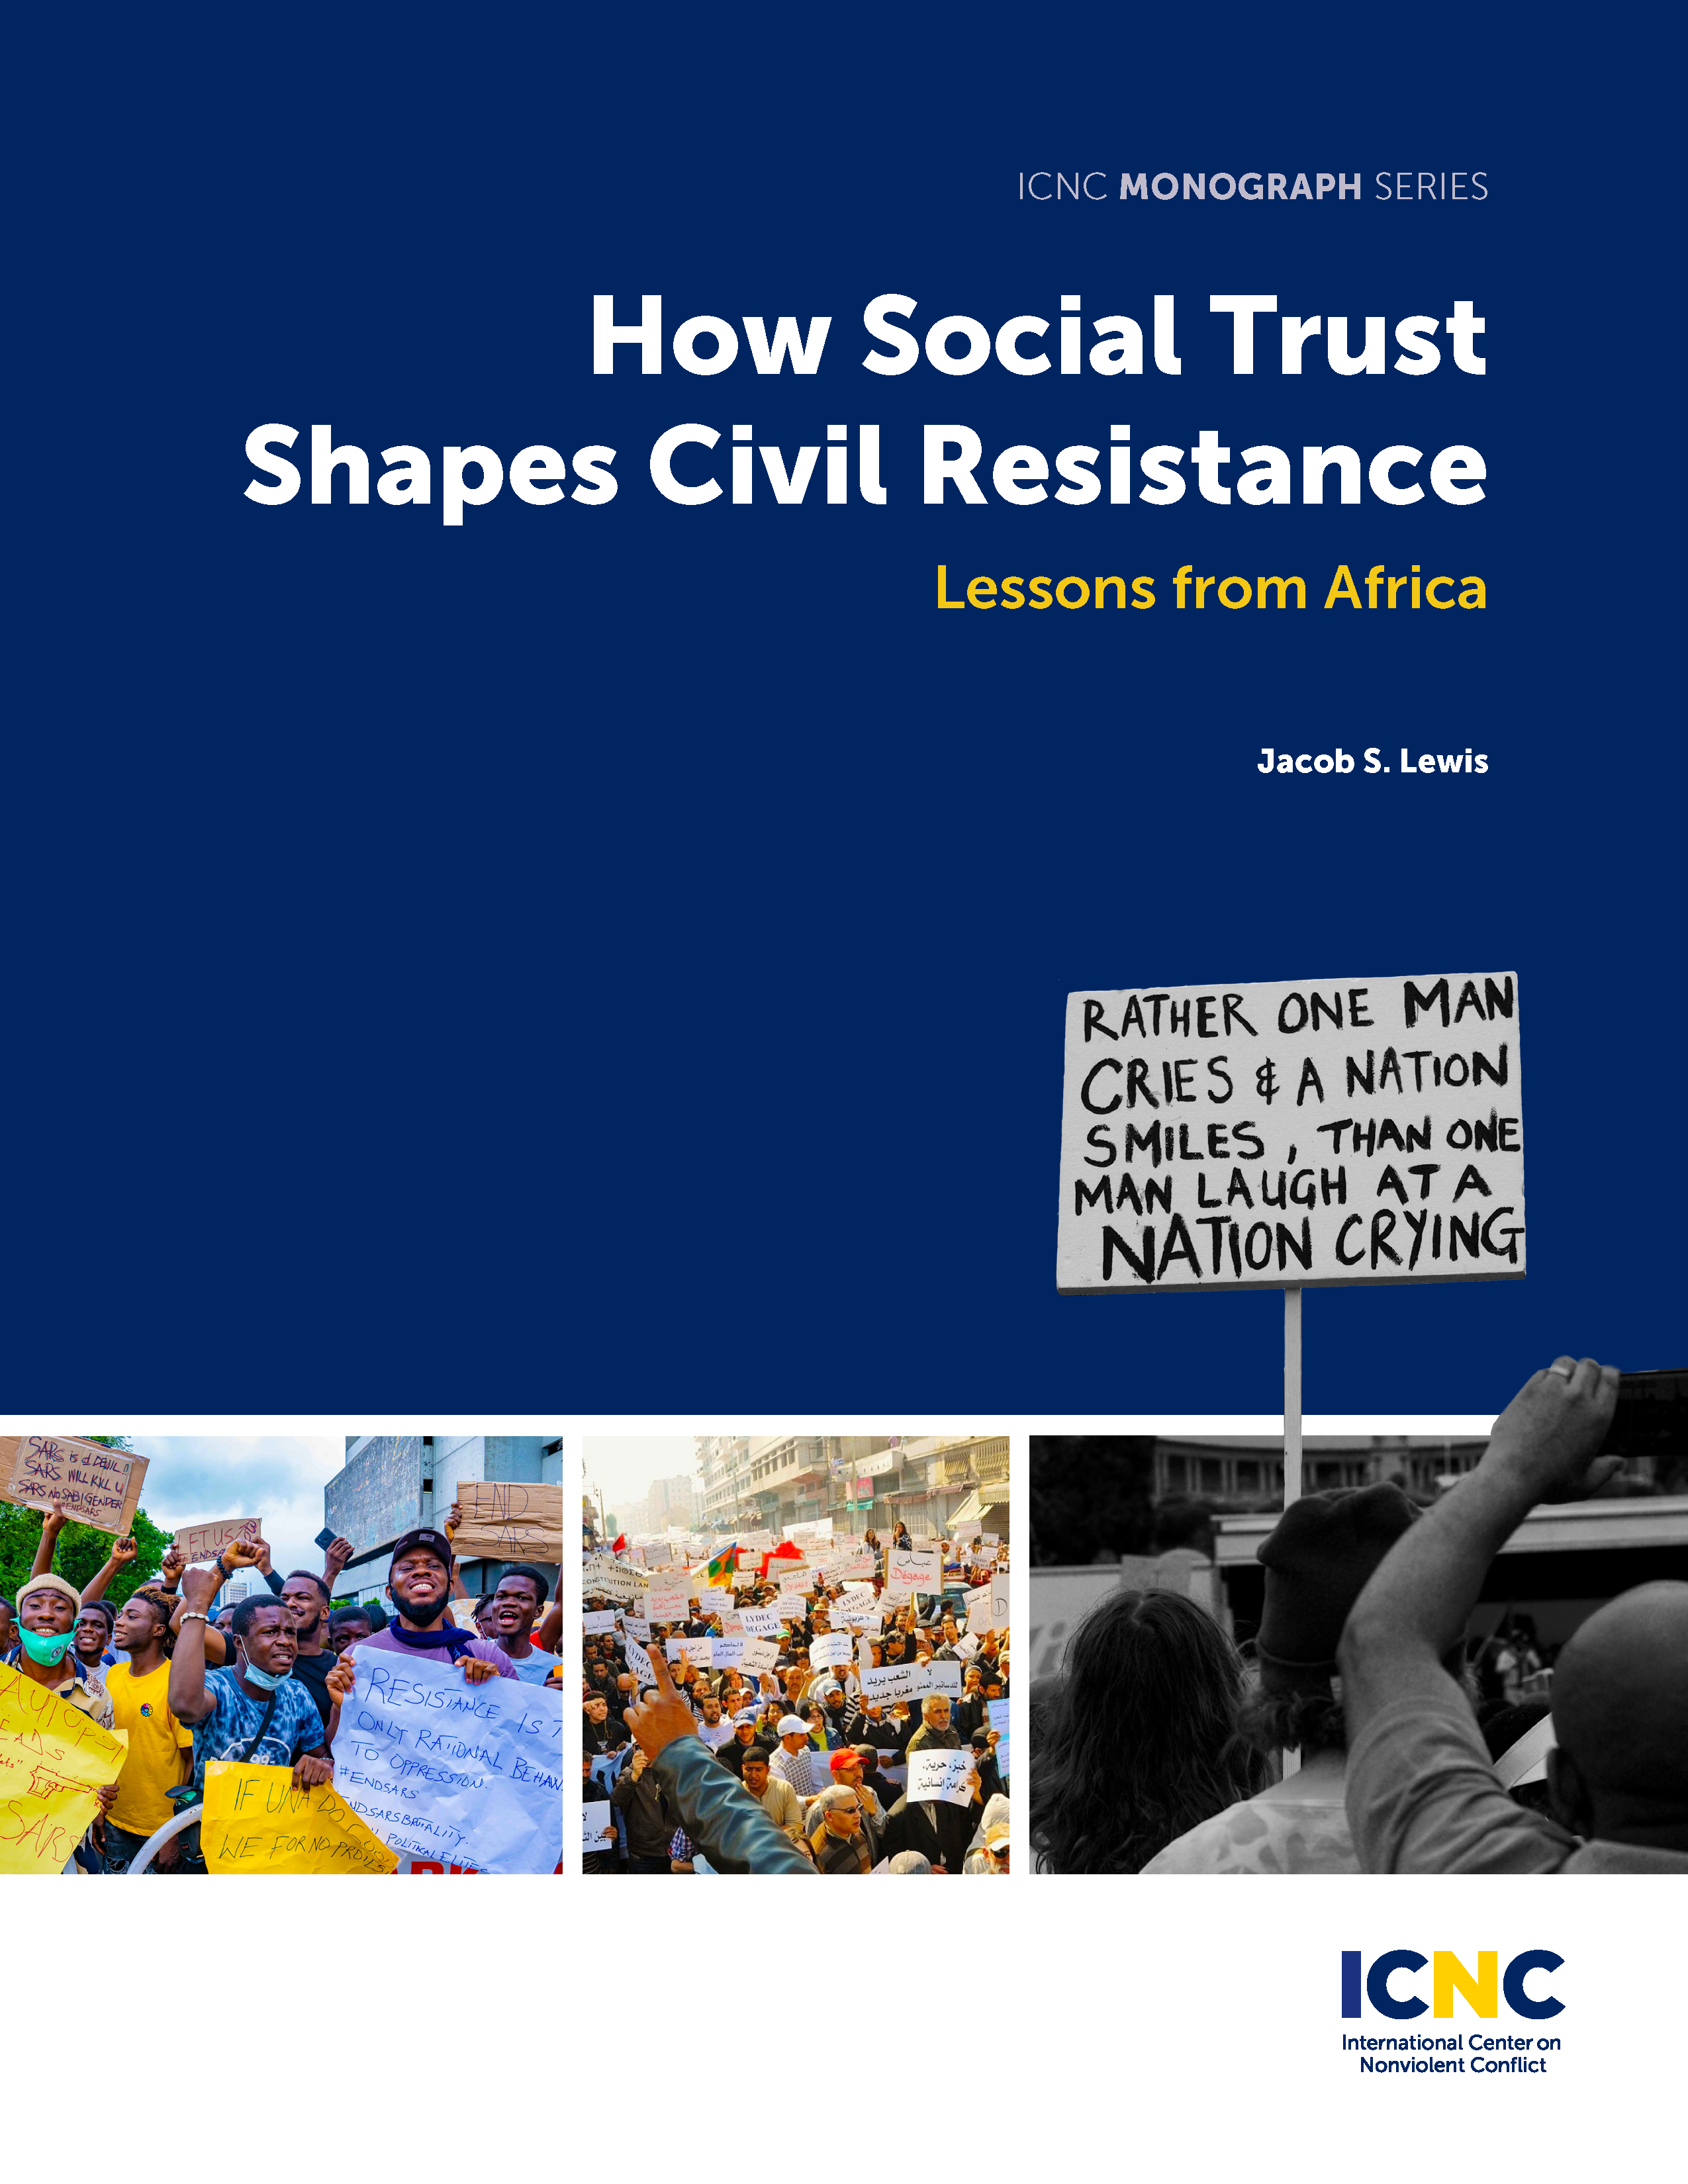 How Social Trust Shapes Civil Resistance: Lessons from Africa